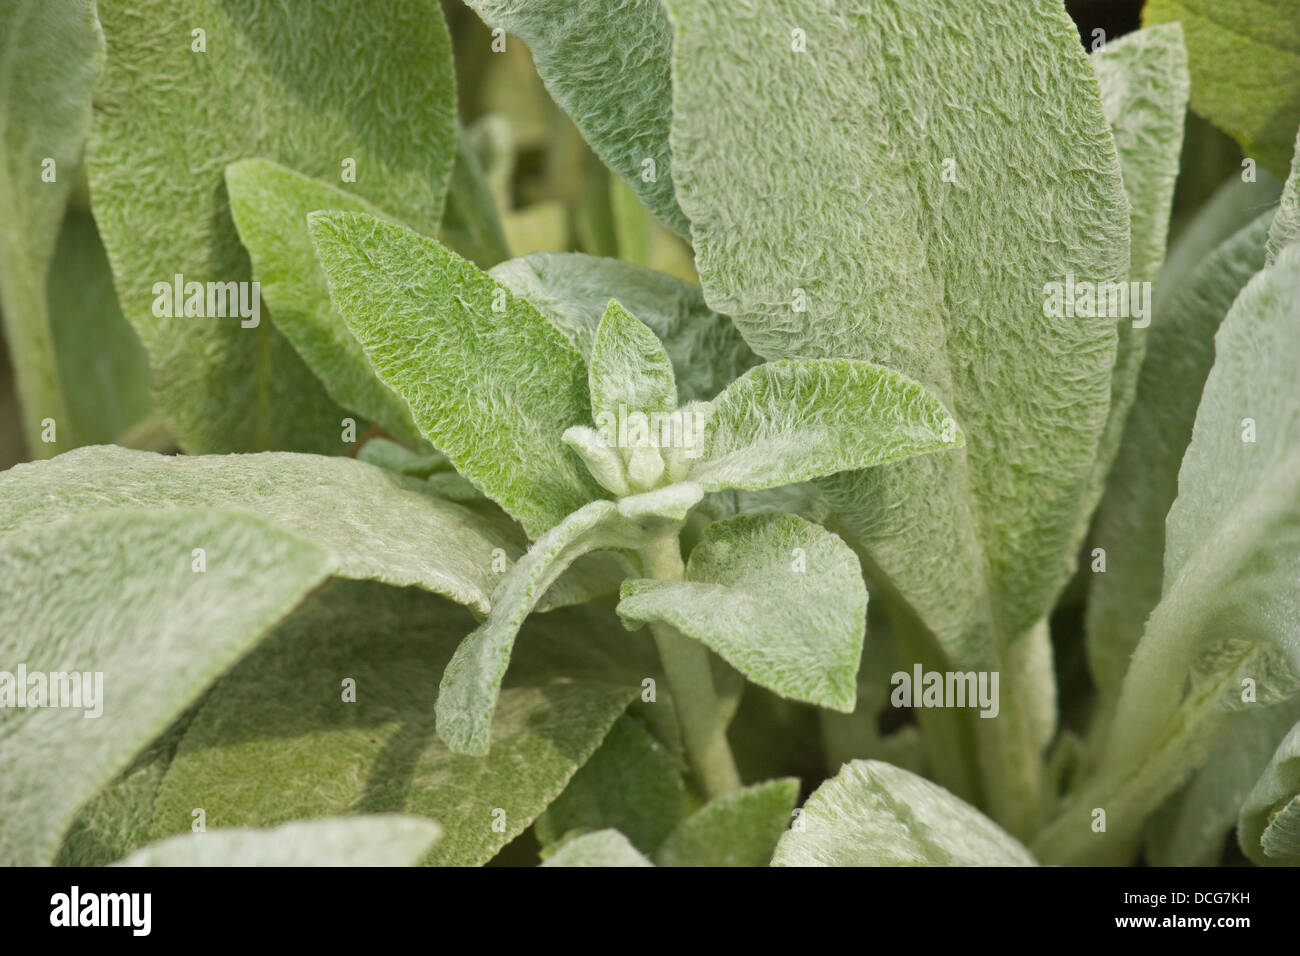 Salvia officinalis, culinary herb known as sage Stock Photo